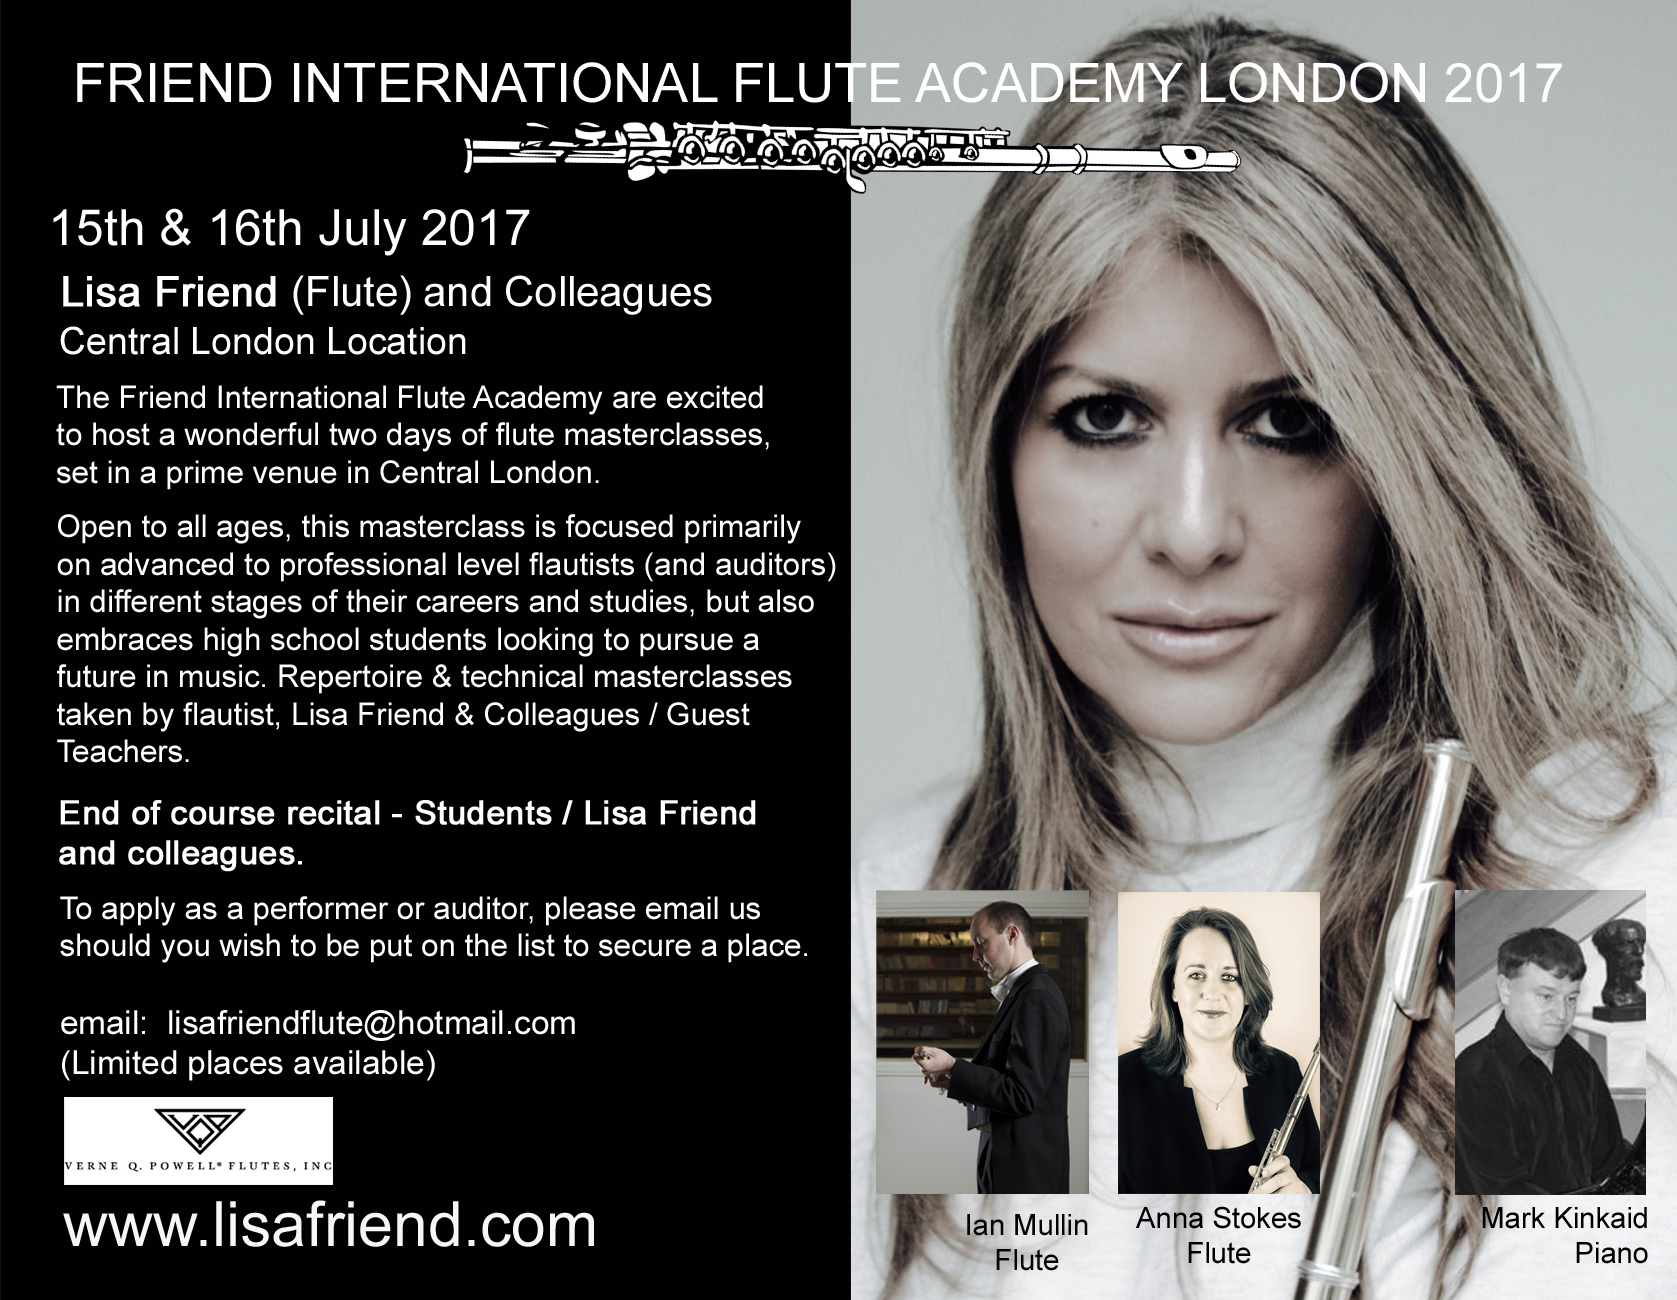 Friend International Flute Academy London 2017 with teachers FINAL 3a